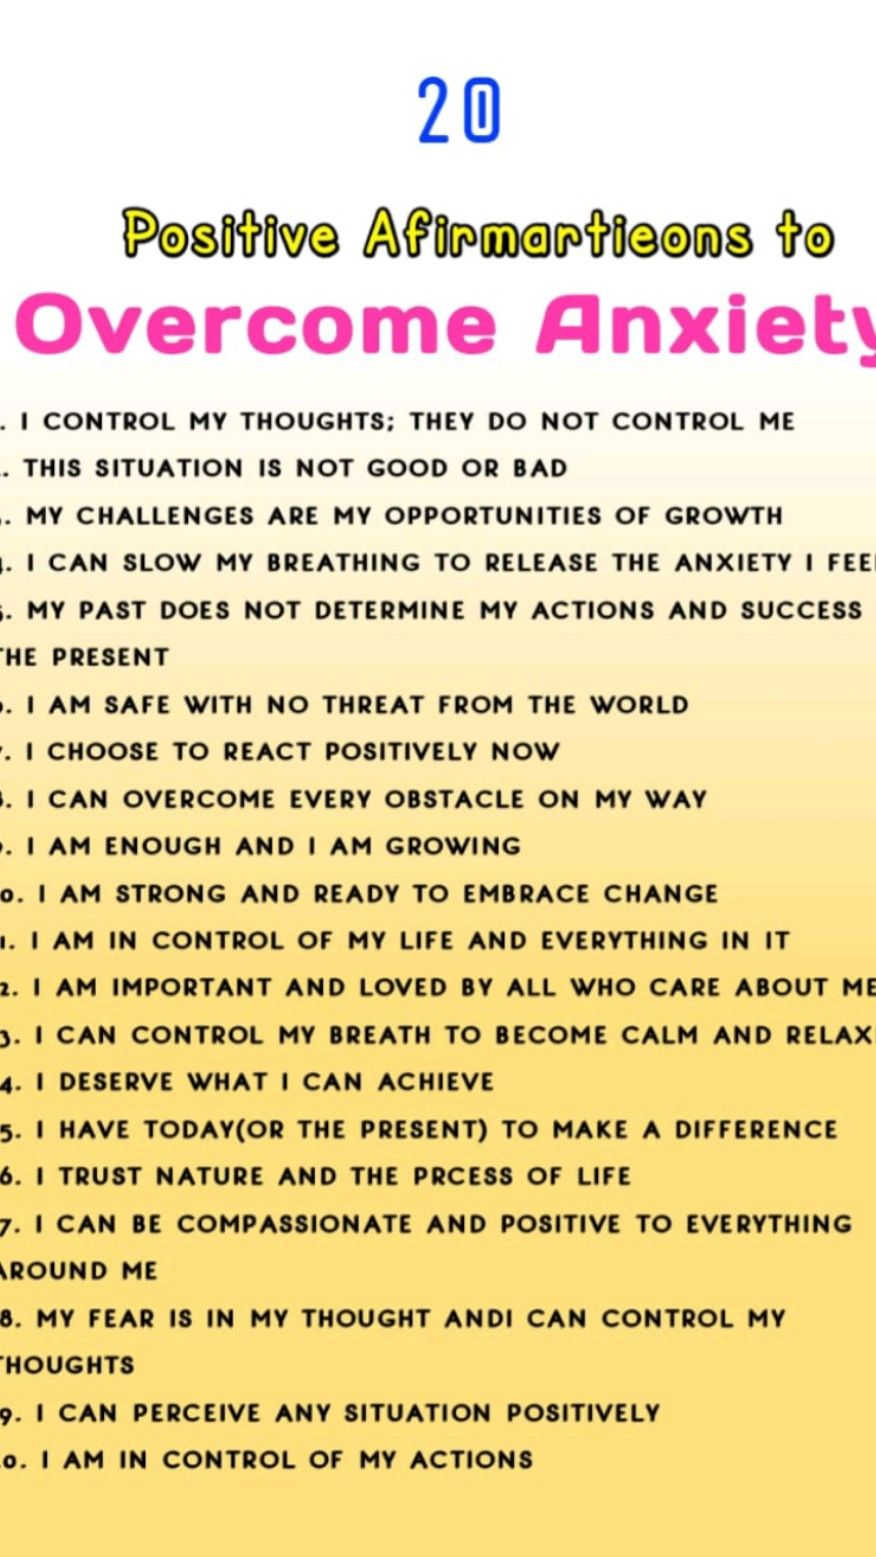 20 Positive Affirmations For Overcoming Anxiety | positive Affirmations | love Affirmations